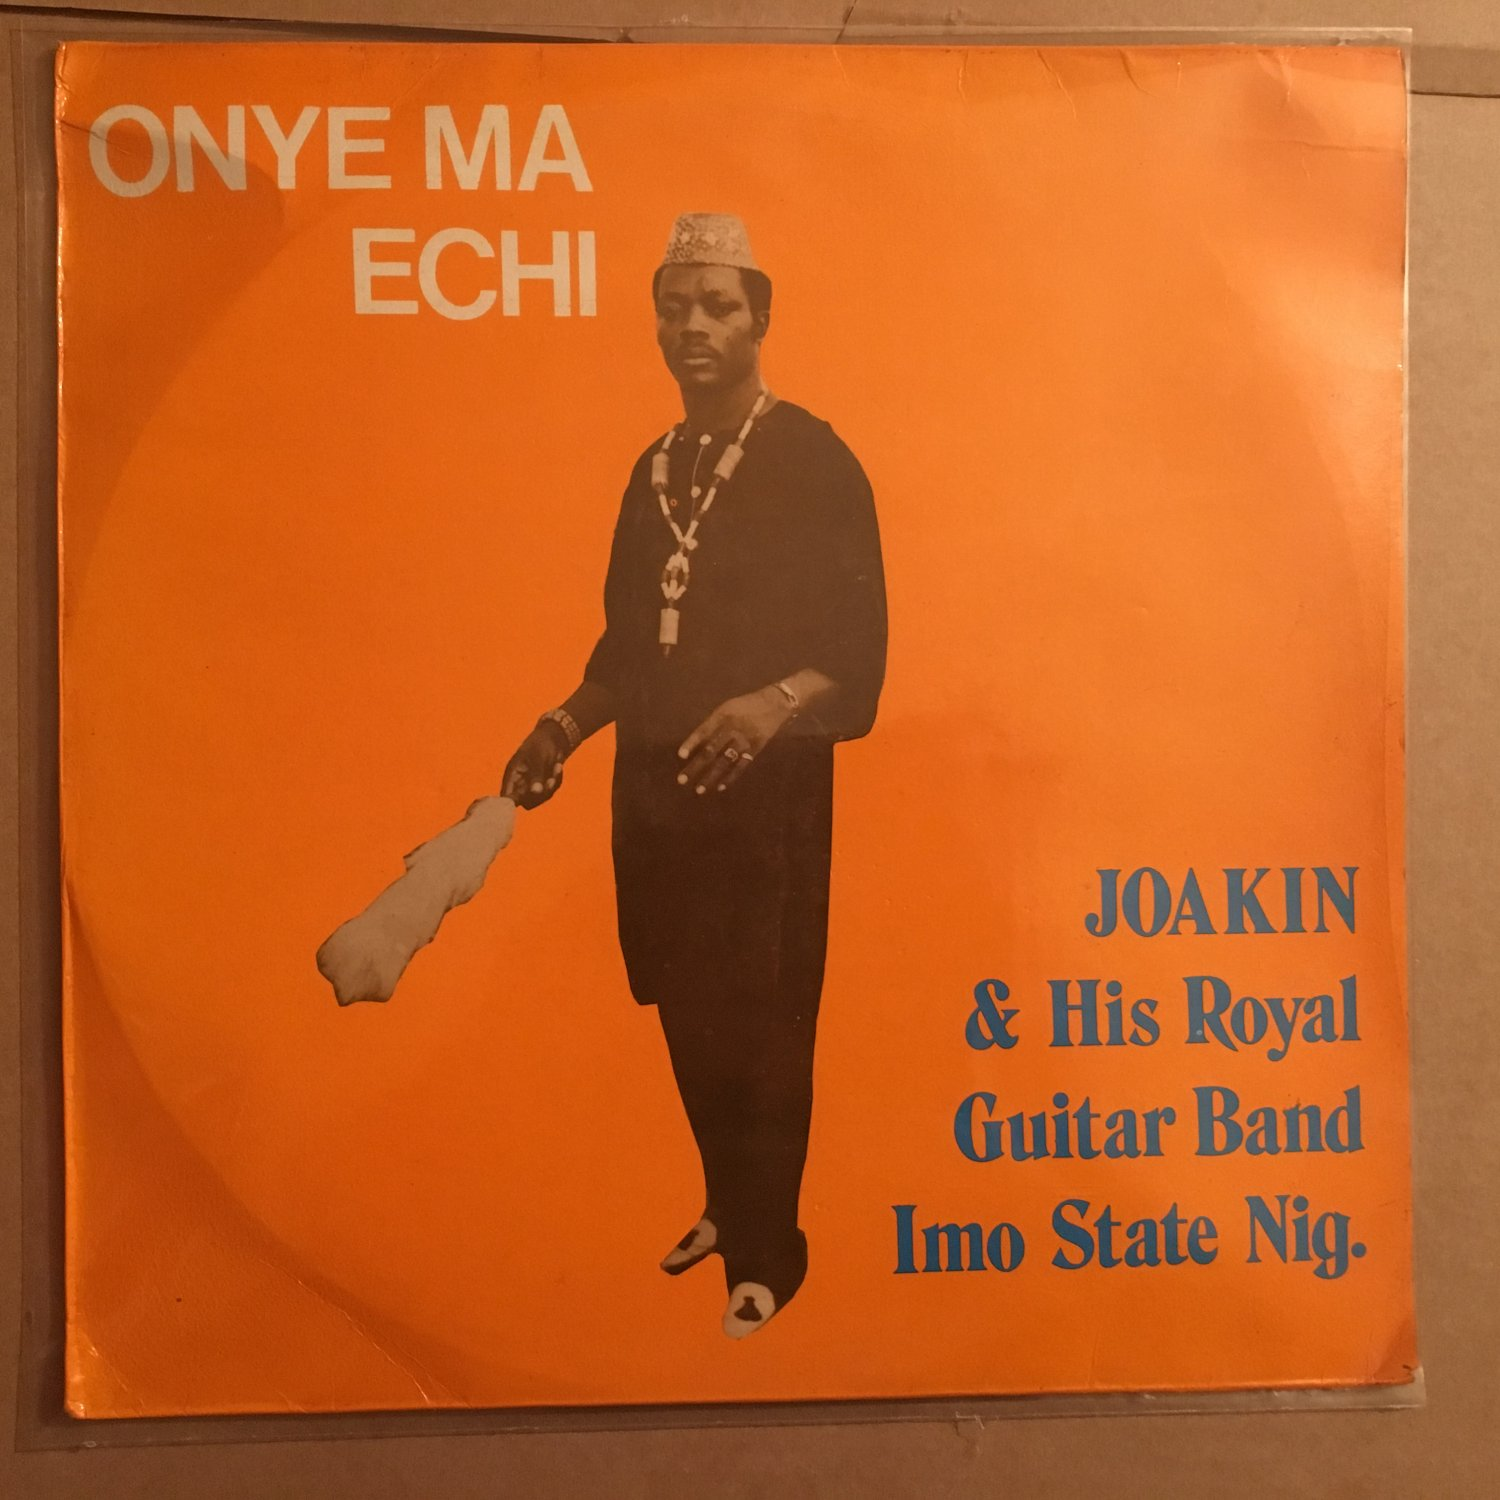 JOAKIN & HIS ROYAL GUITAR BAND IMO LP onye ma echi NIGERIA HIGHLIFE mp3 LISTEN